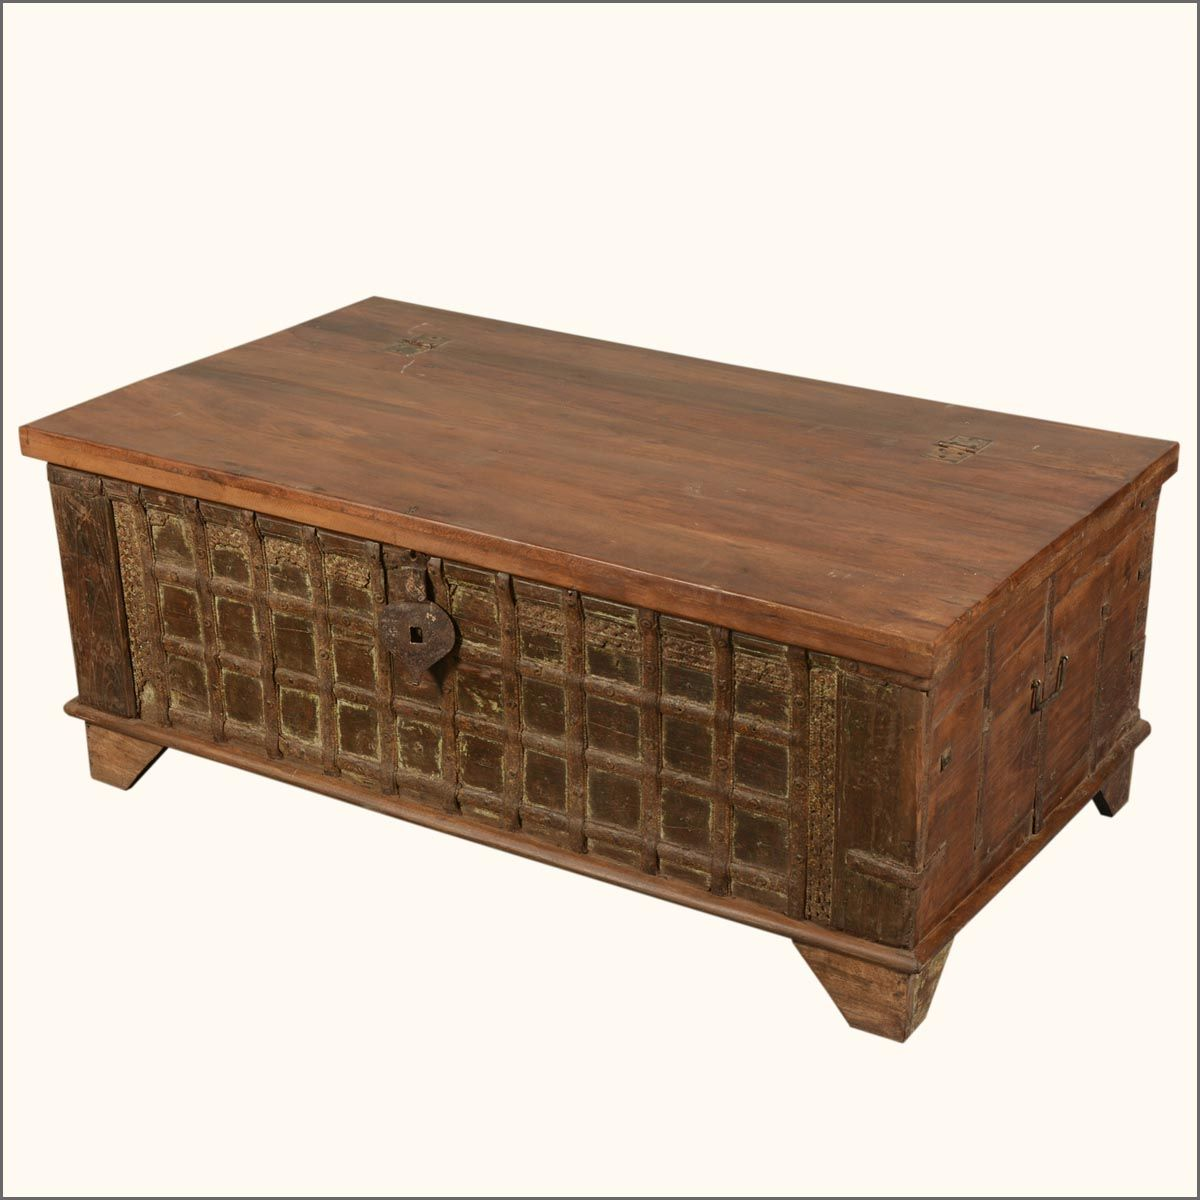 Lovely Iron Gate Front Reclaimed Wood Standing Coffee Table Chest